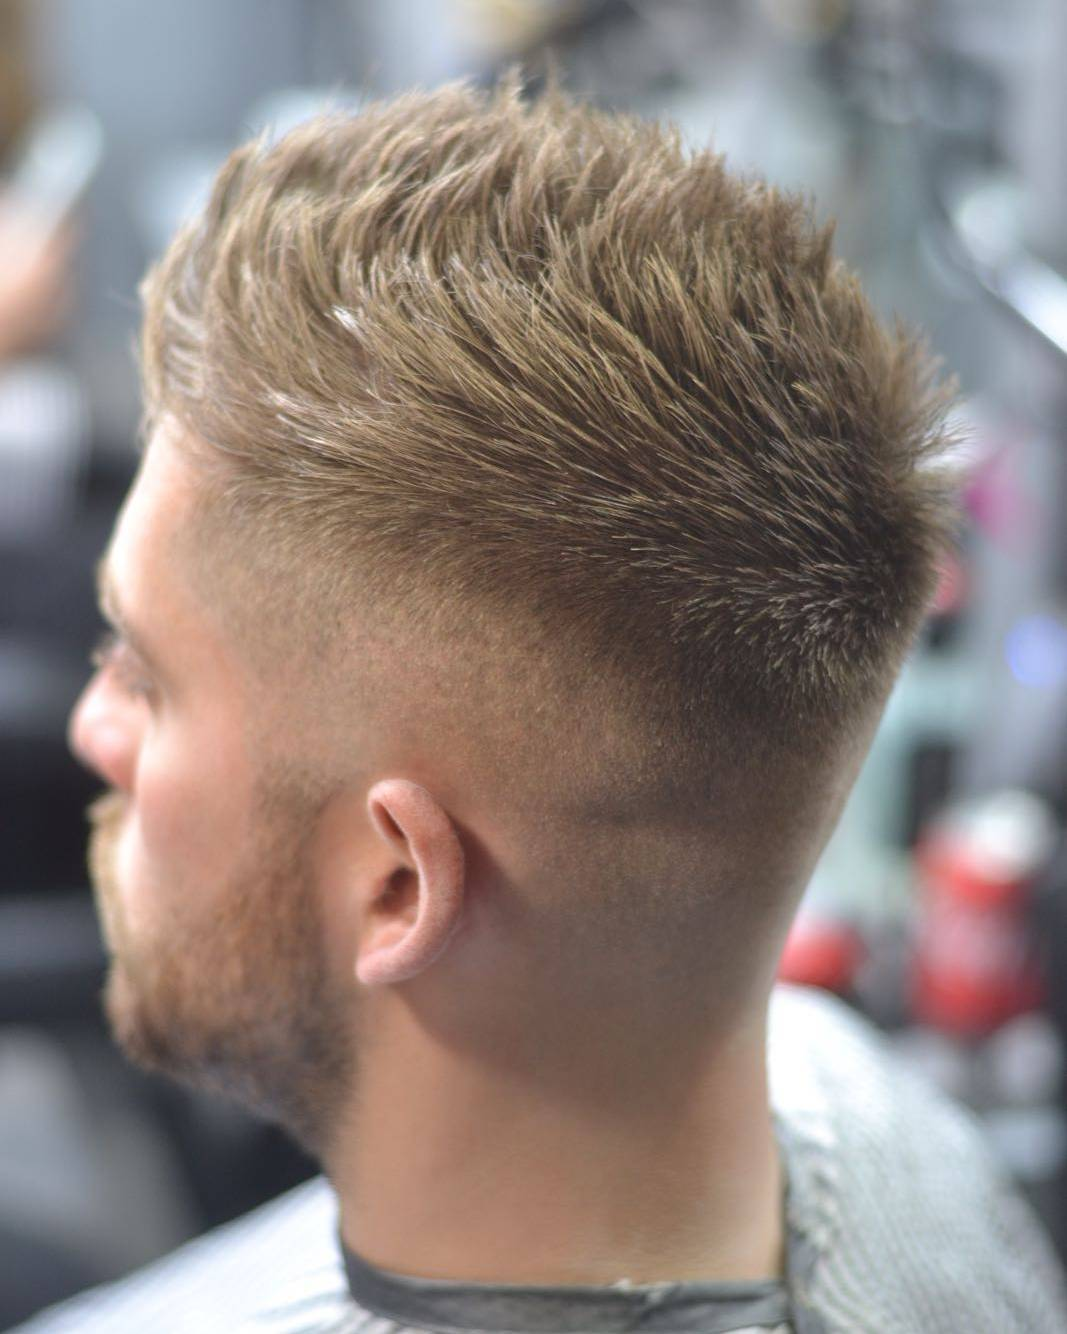 Spiky mens haircut for thick hair